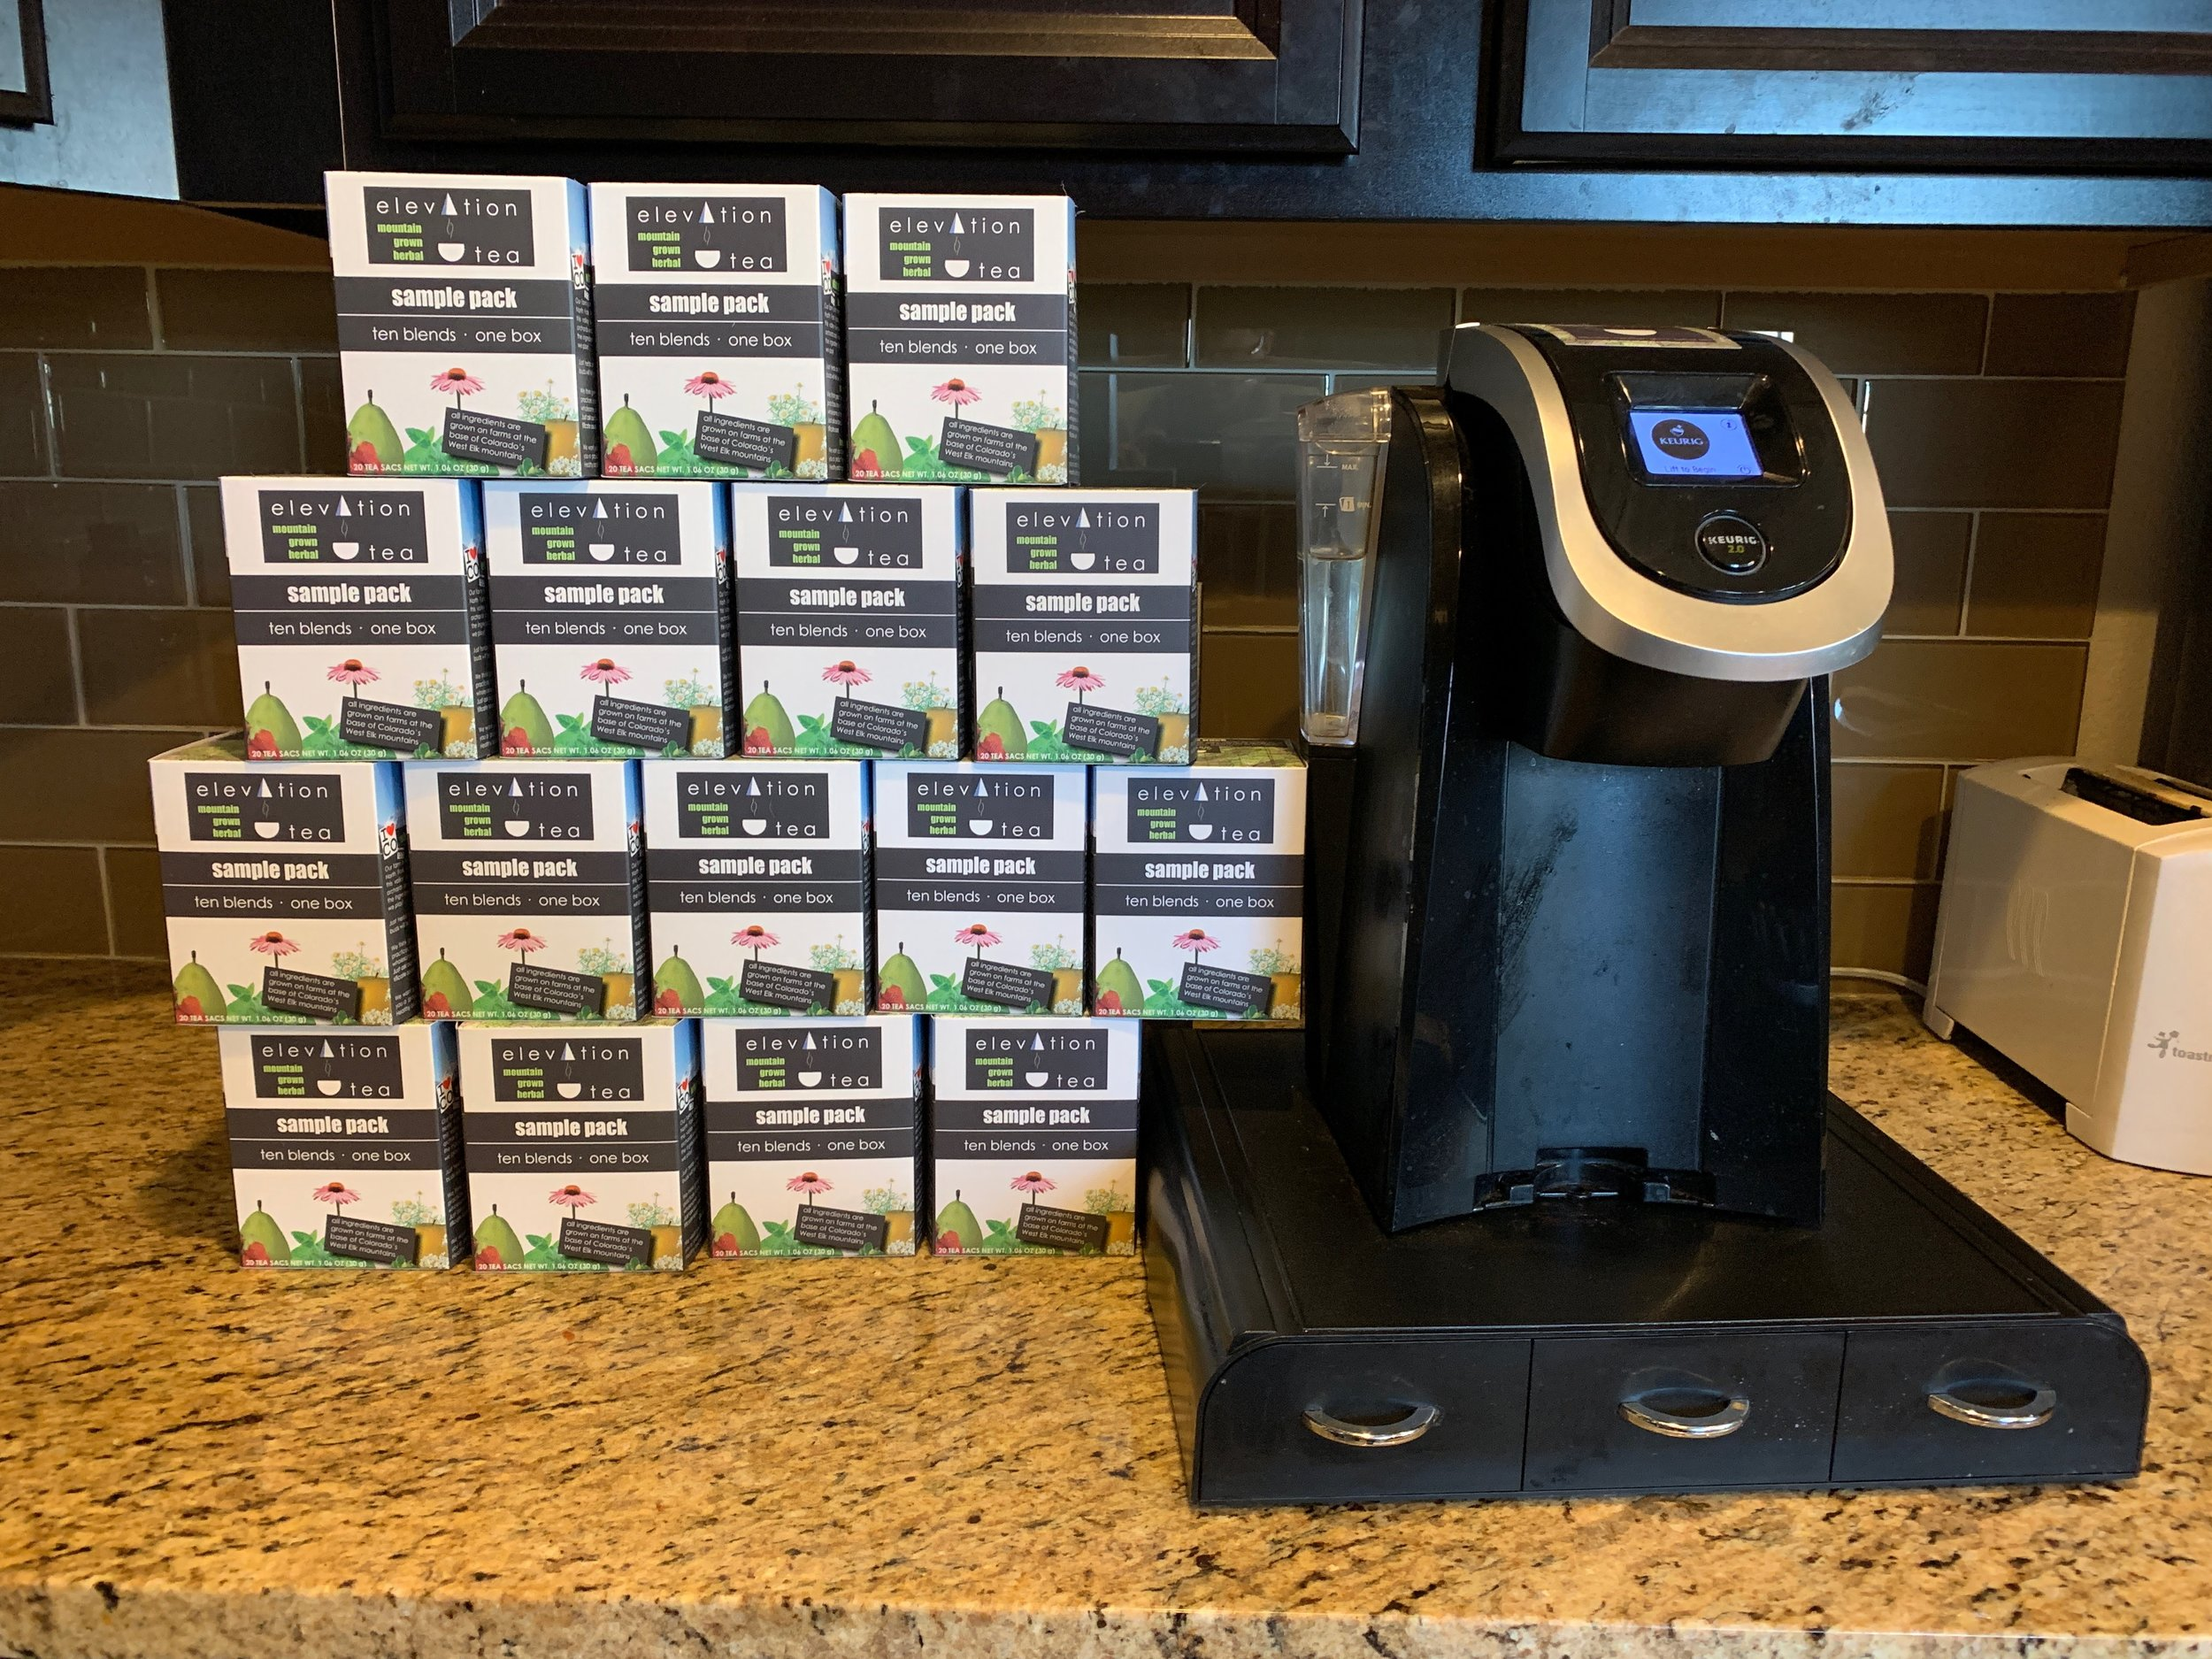 You might have a tea problem when… - -ben